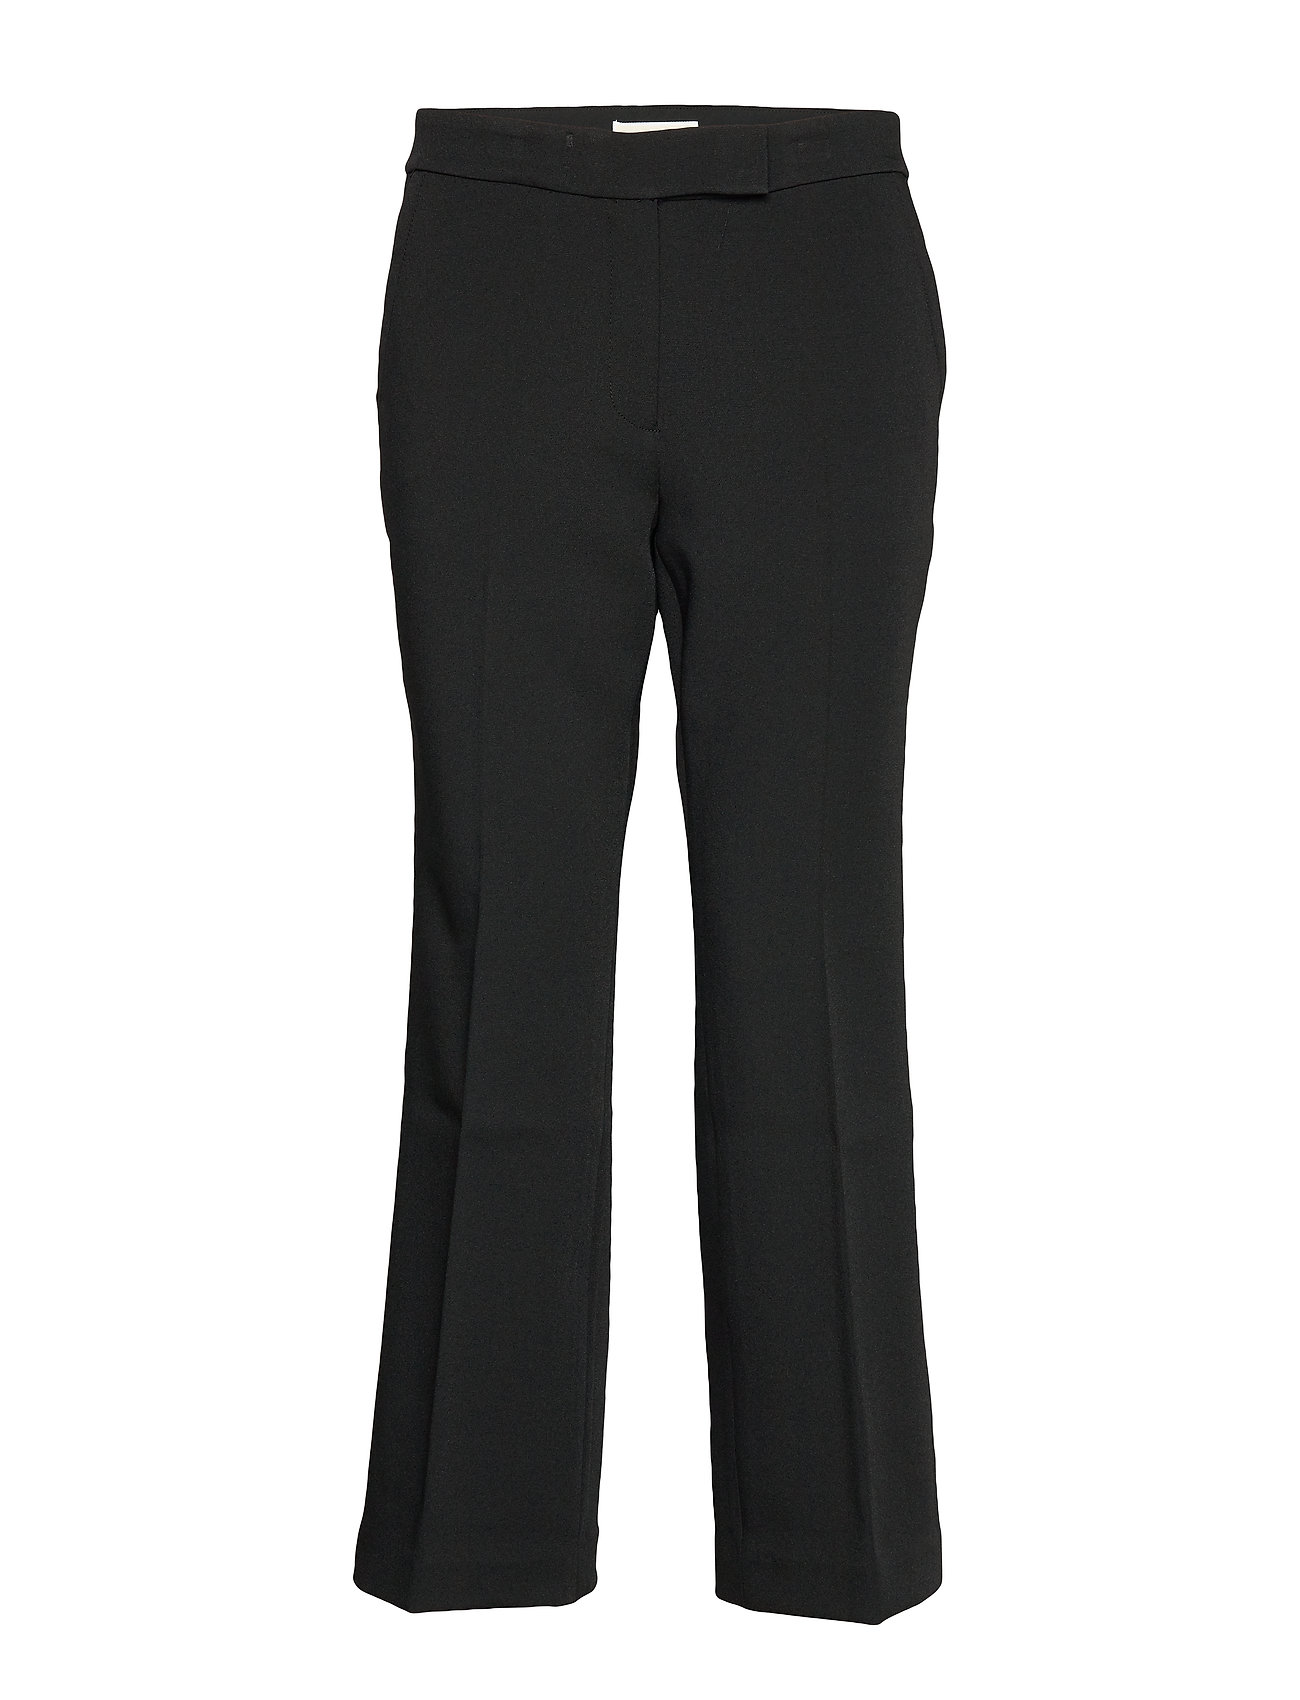 Michael Kors CROP KICK PANT - BLACK